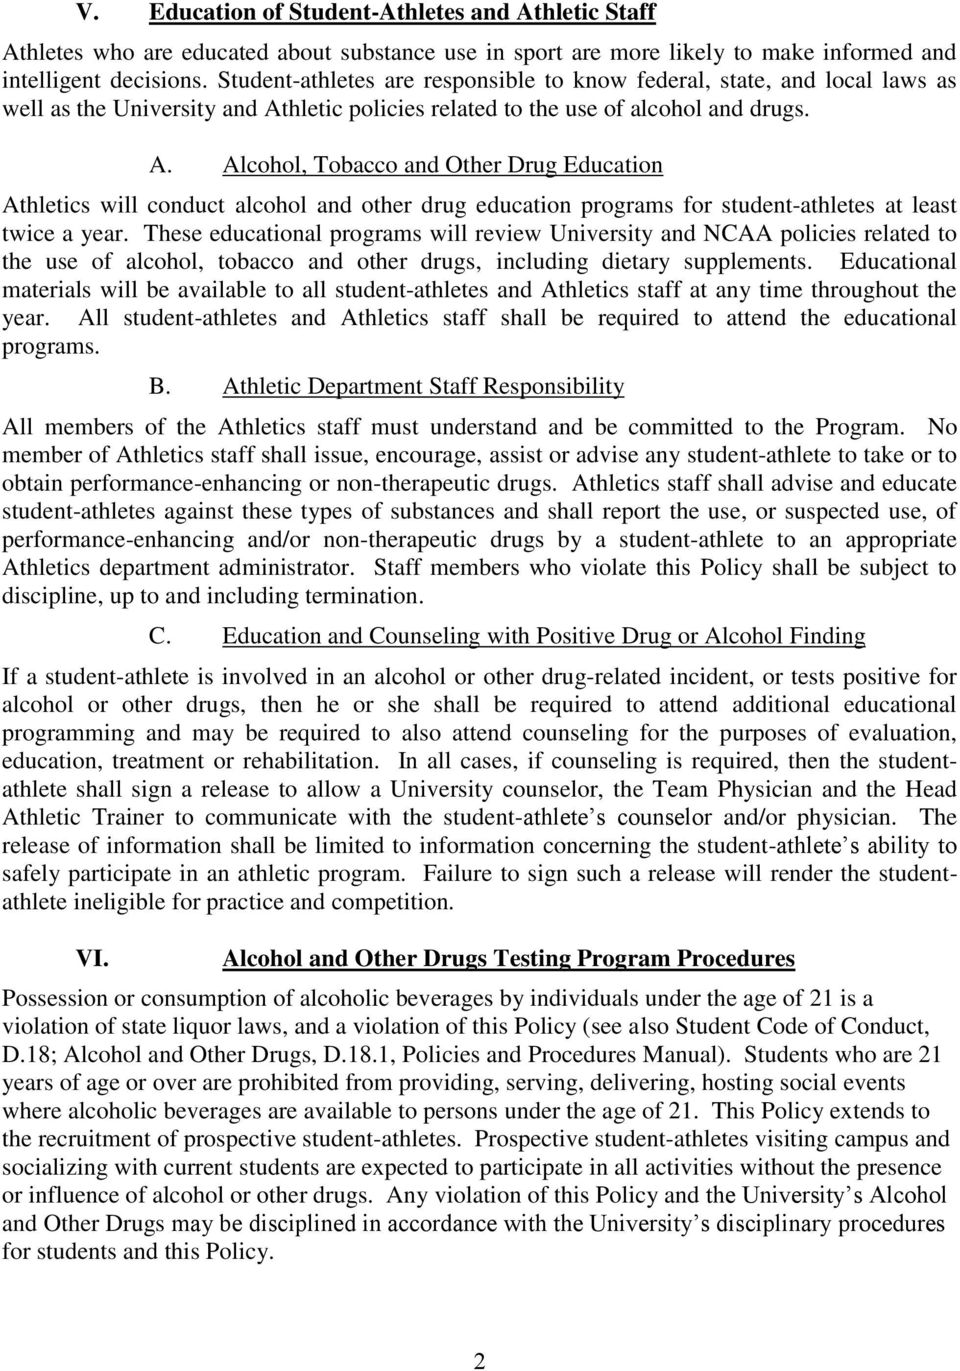 hletic policies related to the use of alcohol and drugs. A.